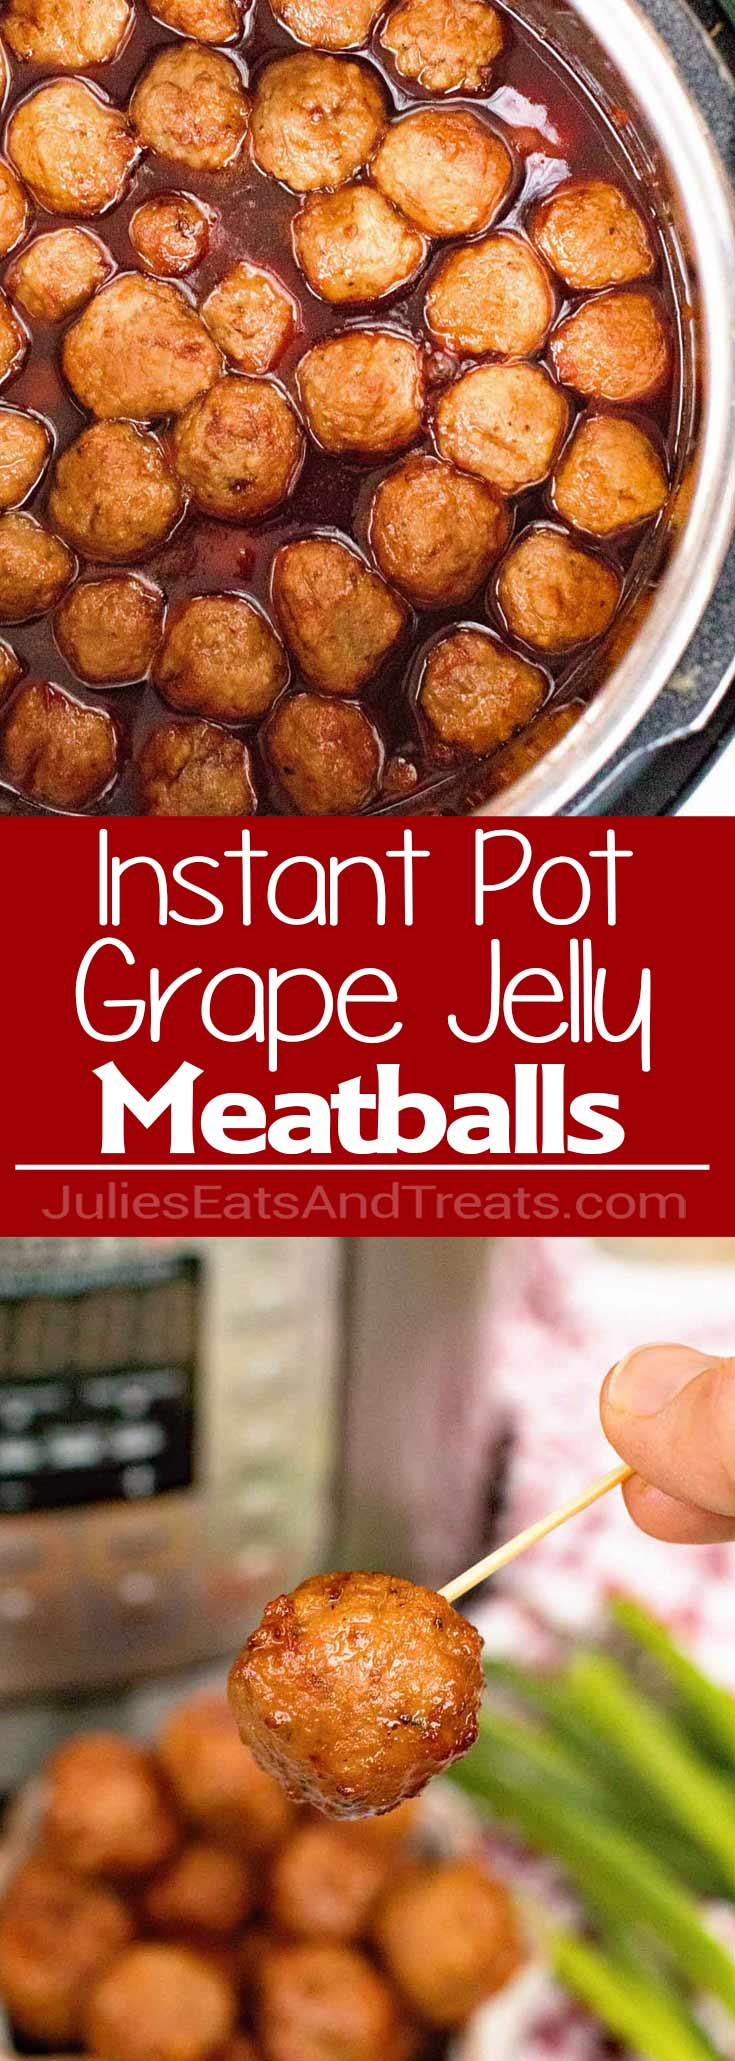 Pressure Cooker {Instant Pot} Grape Jelly Meatballs – These easy to make, traditional, meatballs with grape jelly and chili sauce are perfect for parties and game day gatherings!